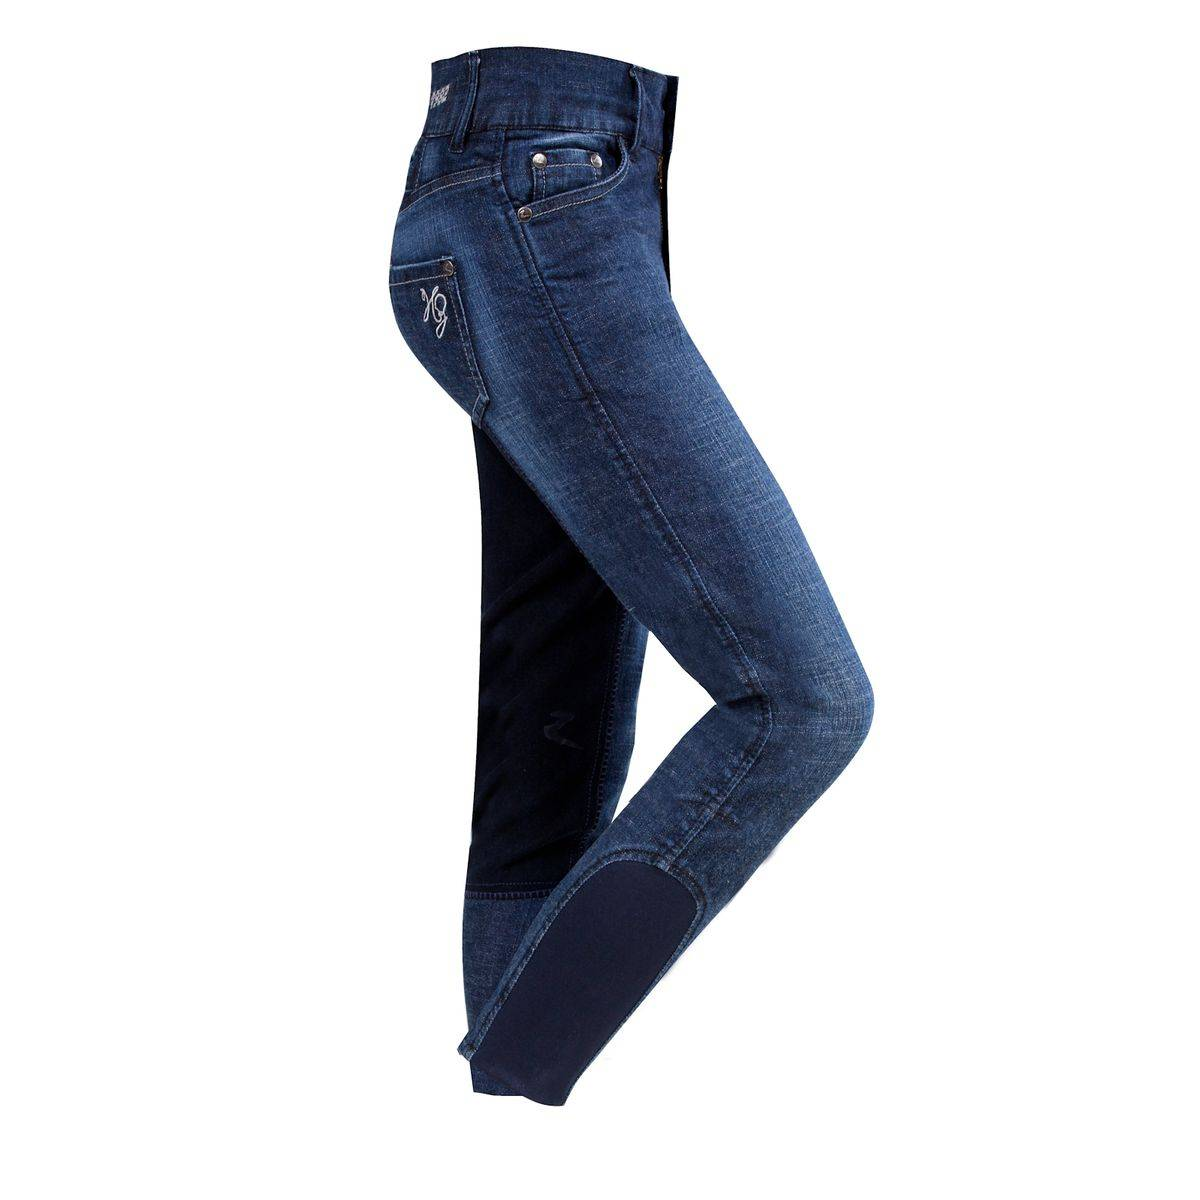 Horze CARLA JR Denim Breeches - Kids, Full Seat